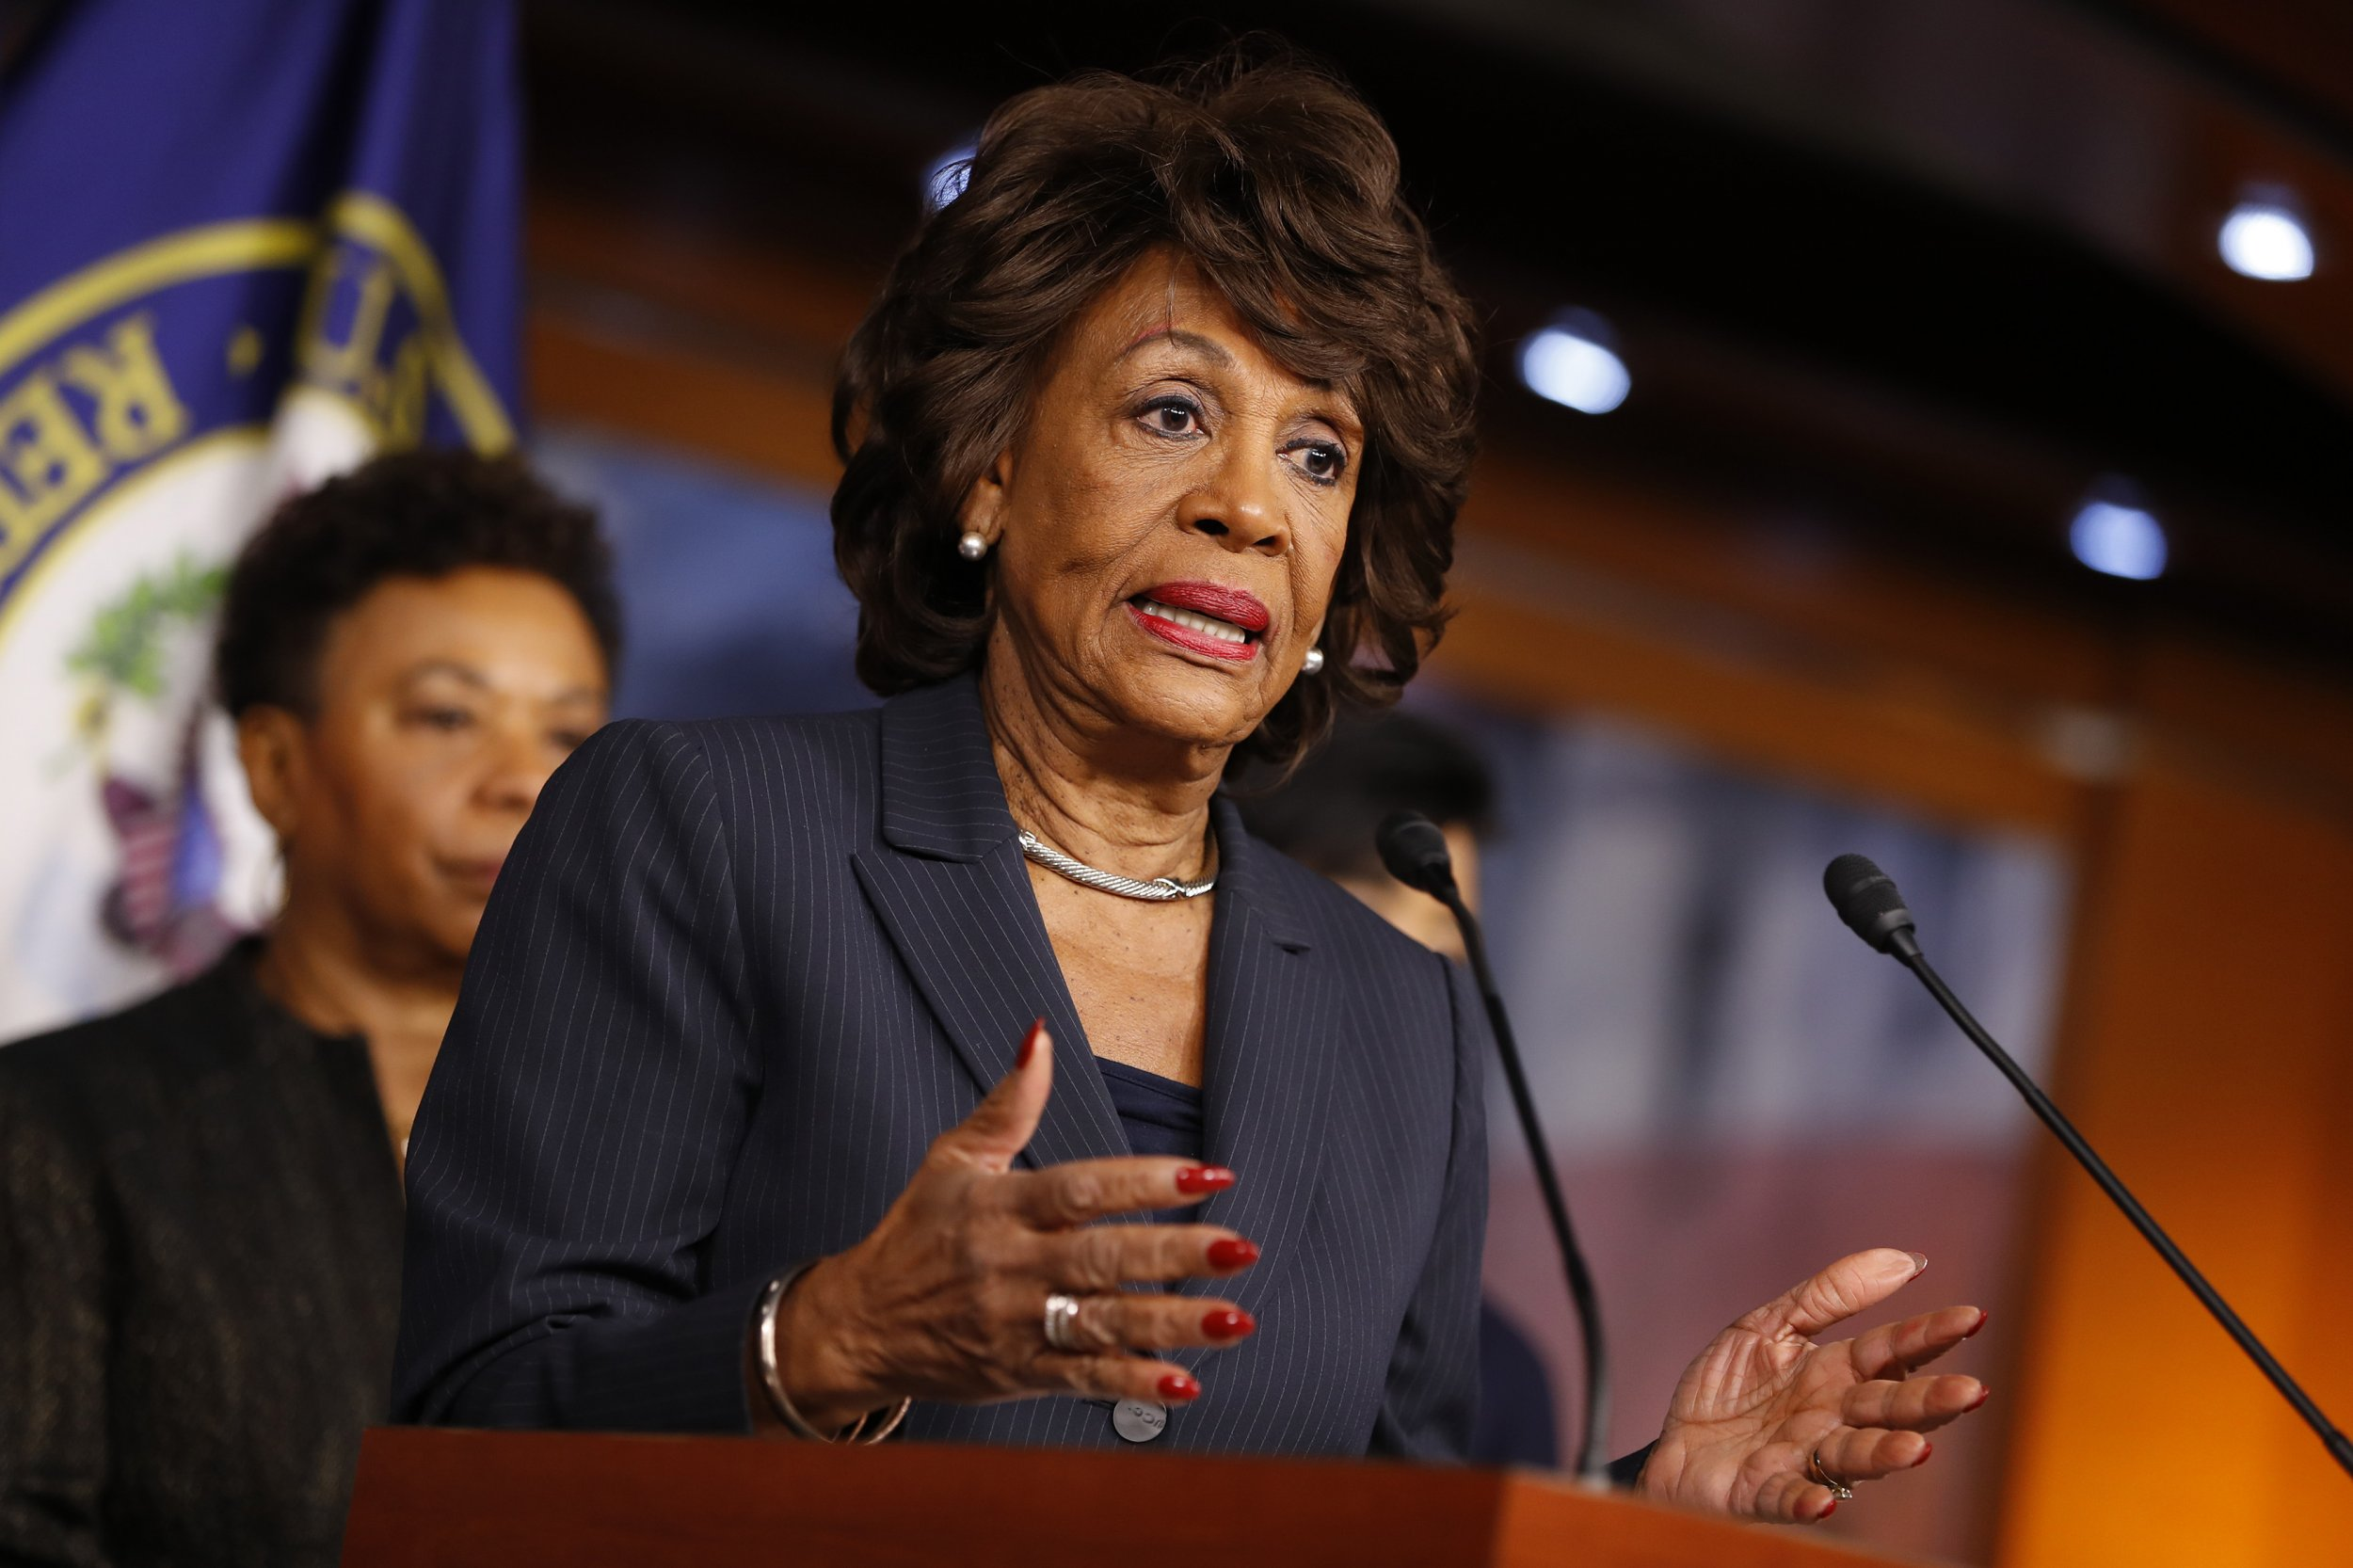 Maxine Waters guarantees Trump-Russia collusion and says it's time to demand the president's impeachment